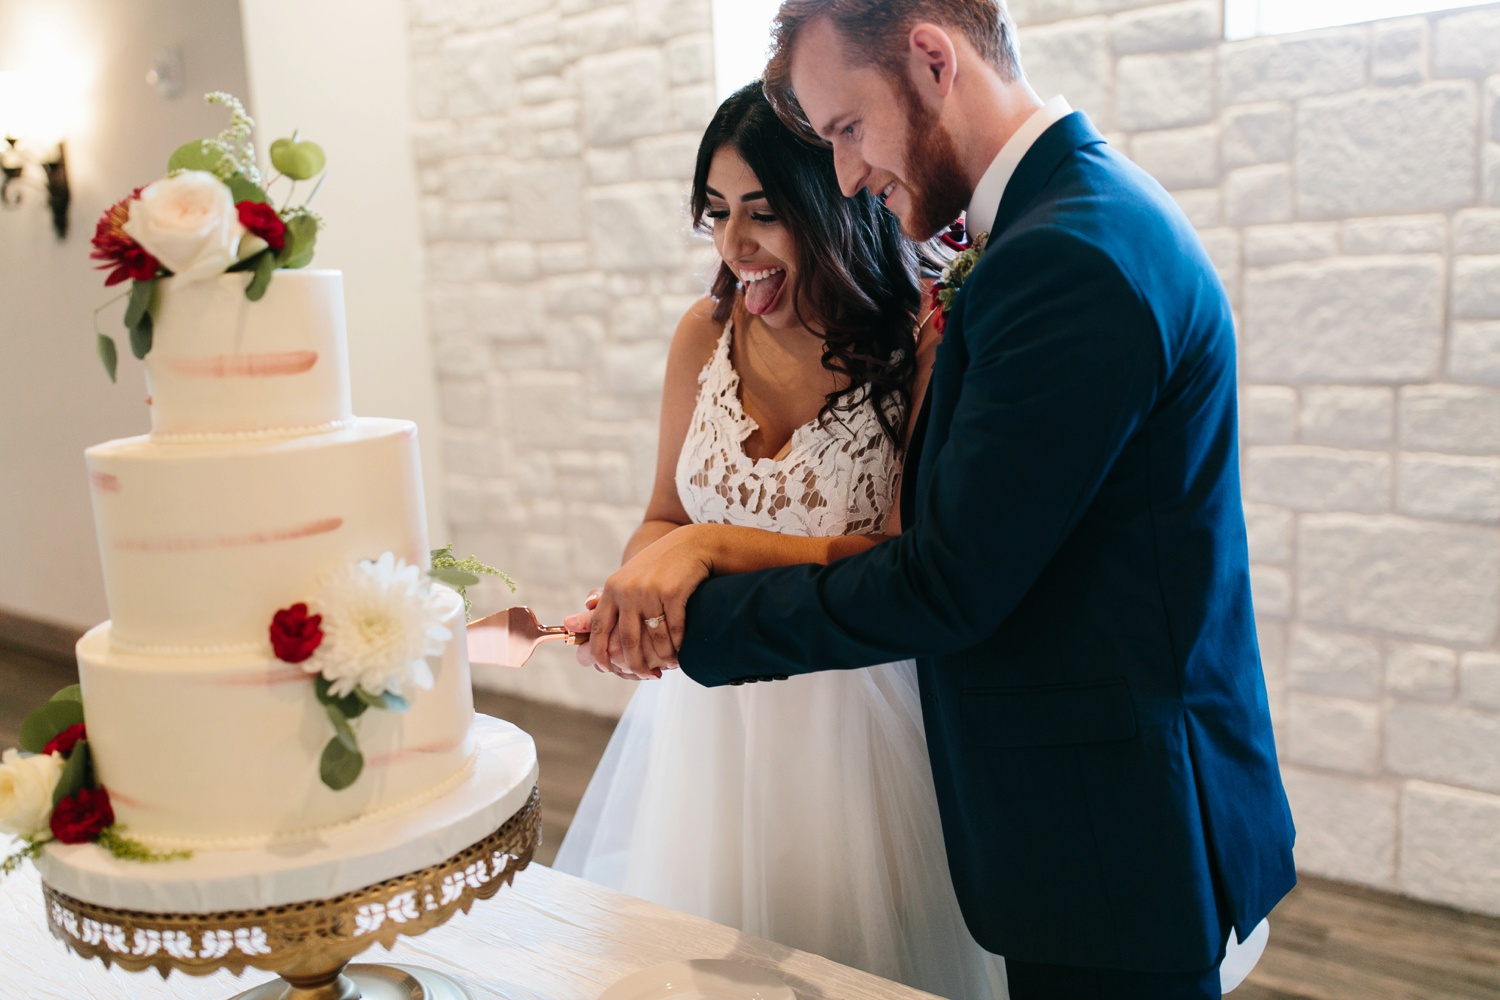 Grant + Lysette | a vibrant, deep burgundy and navy, and mixed metals wedding at Hidden Pines Chapel by North Texas Wedding Photographer Rachel Meagan Photography 145